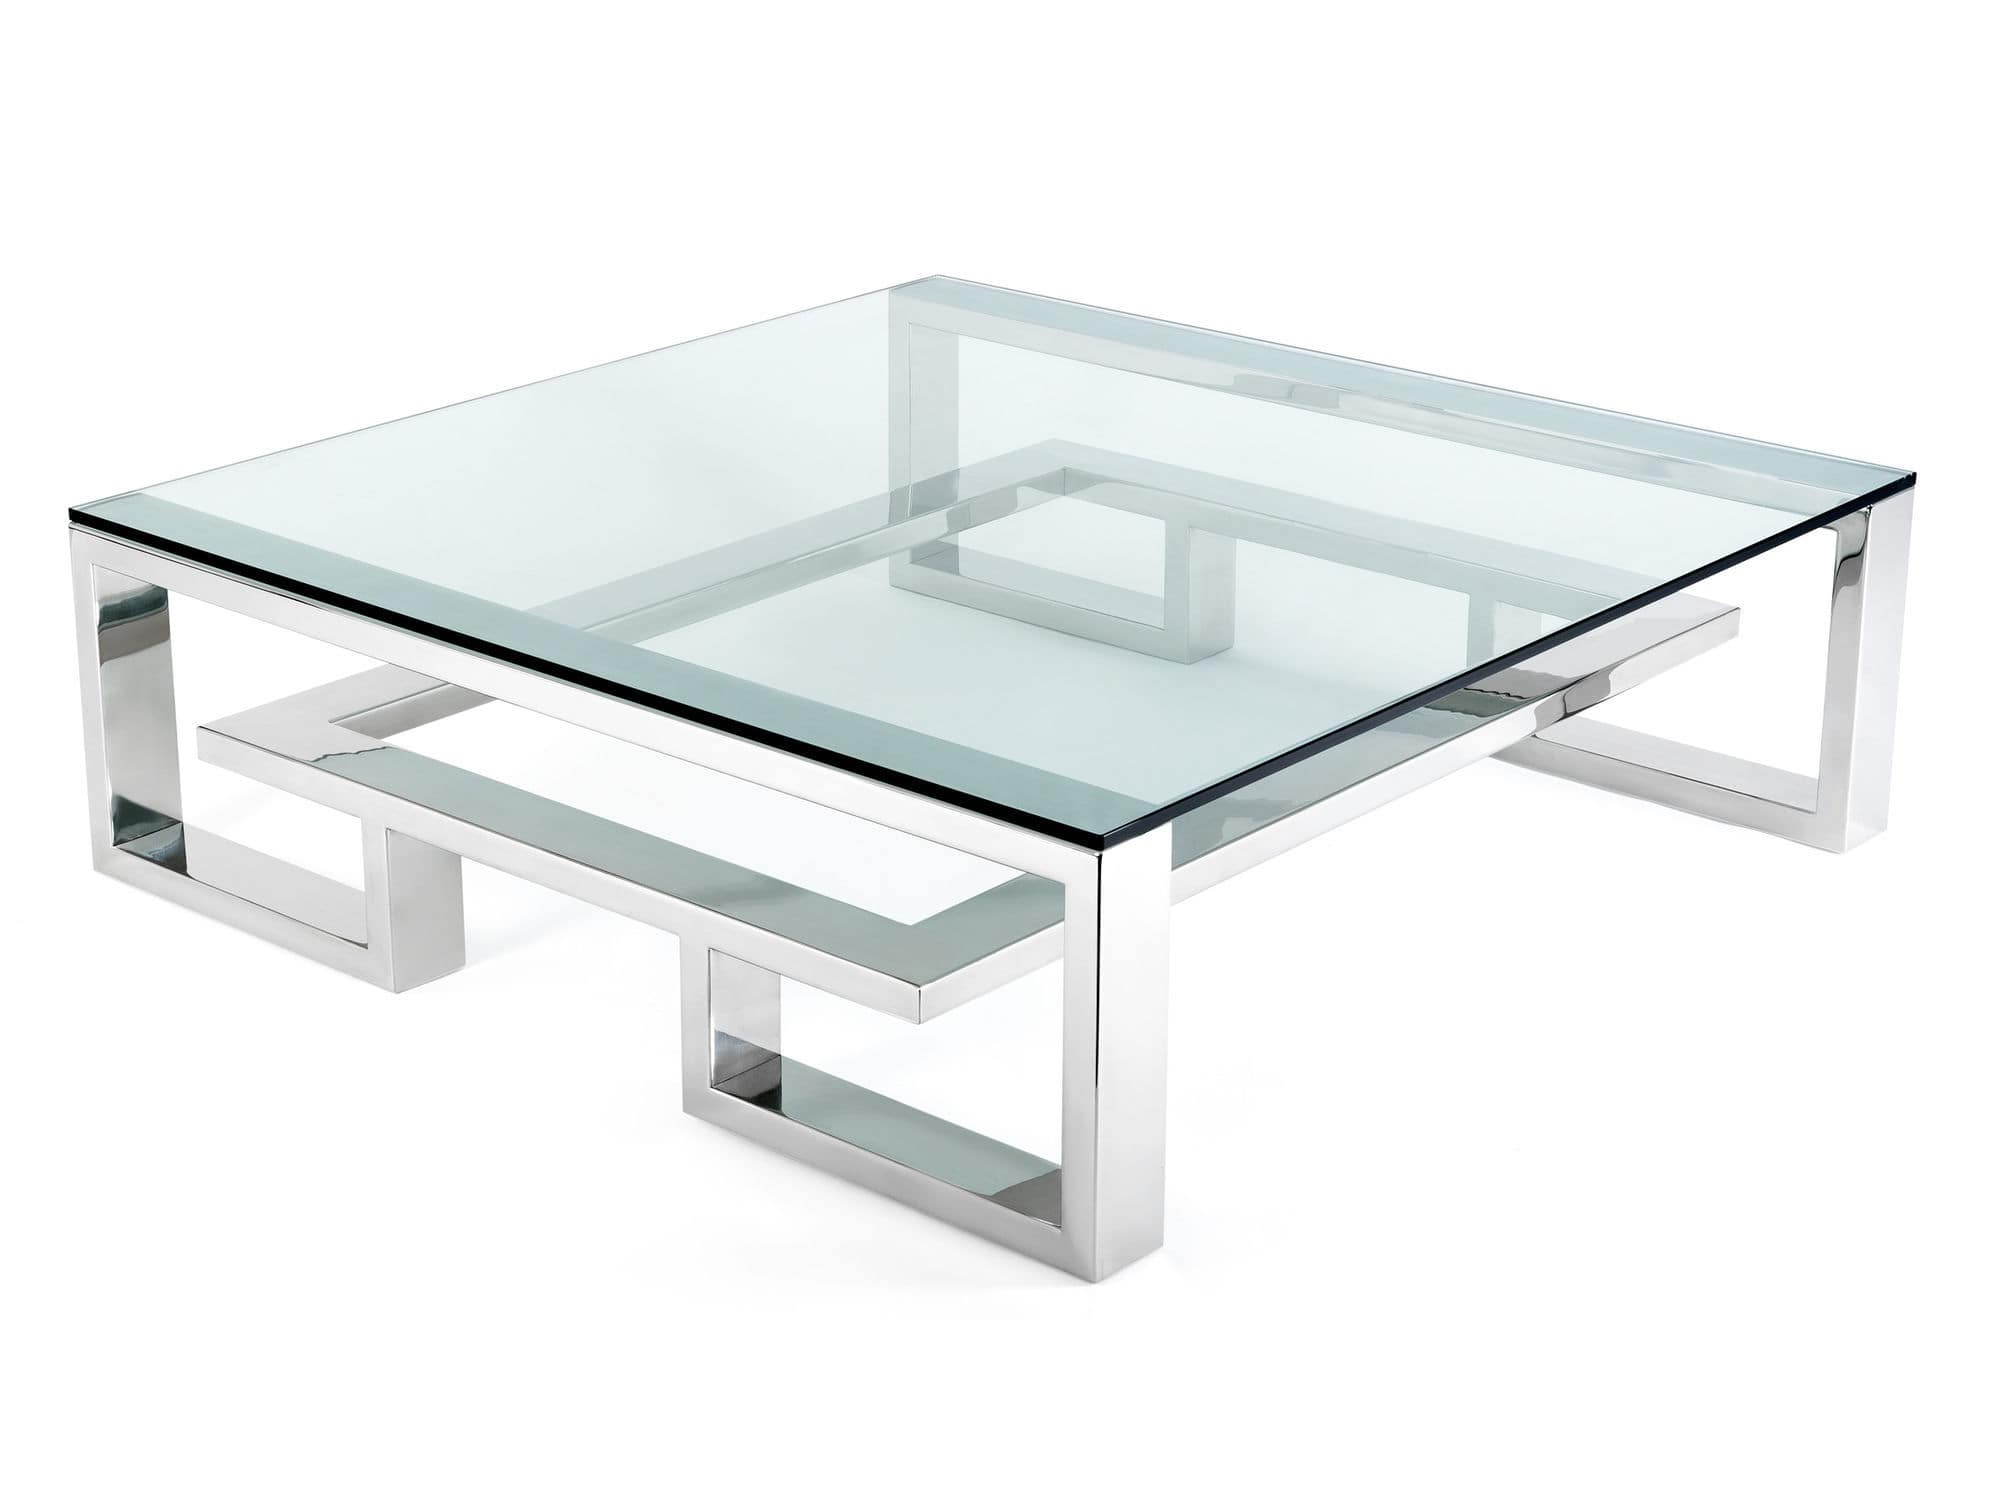 Table basse en verre carr e id es de d coration - Table basse carree verre ...